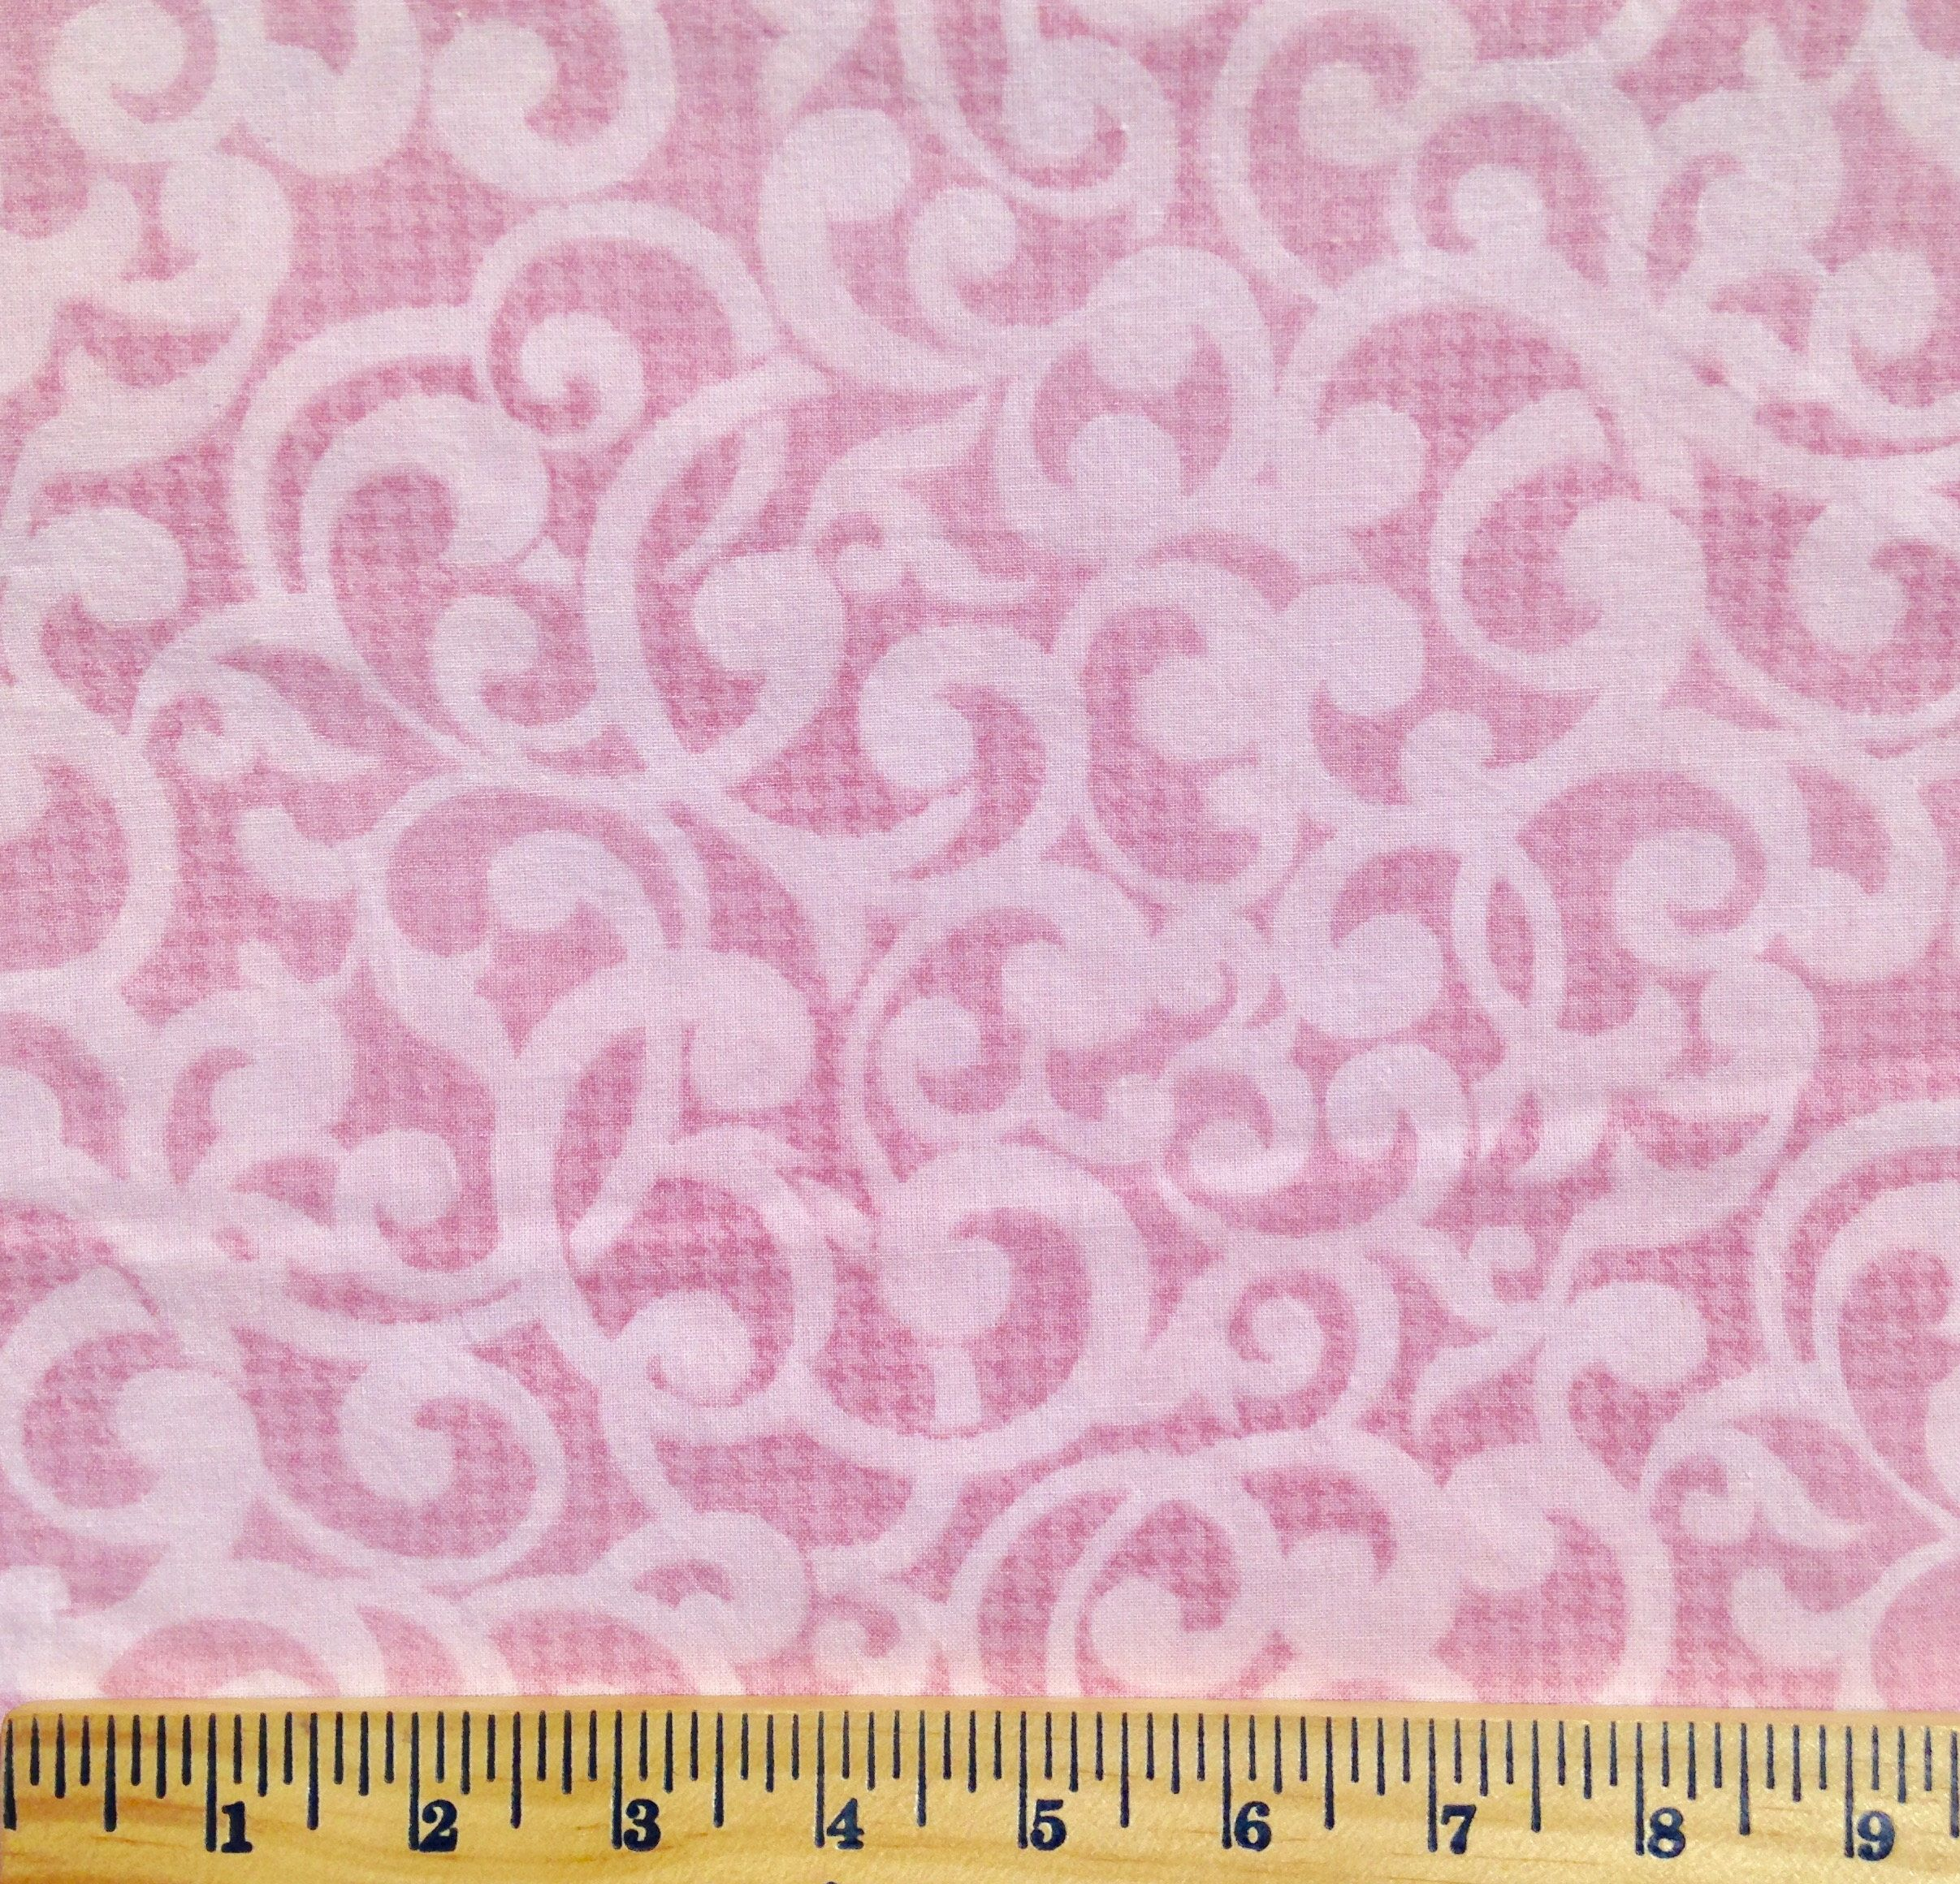 Quilt backing, Pink swirl, extra wide quilt backing, 3 yards wide ... : extra wide quilt backing fabric - Adamdwight.com